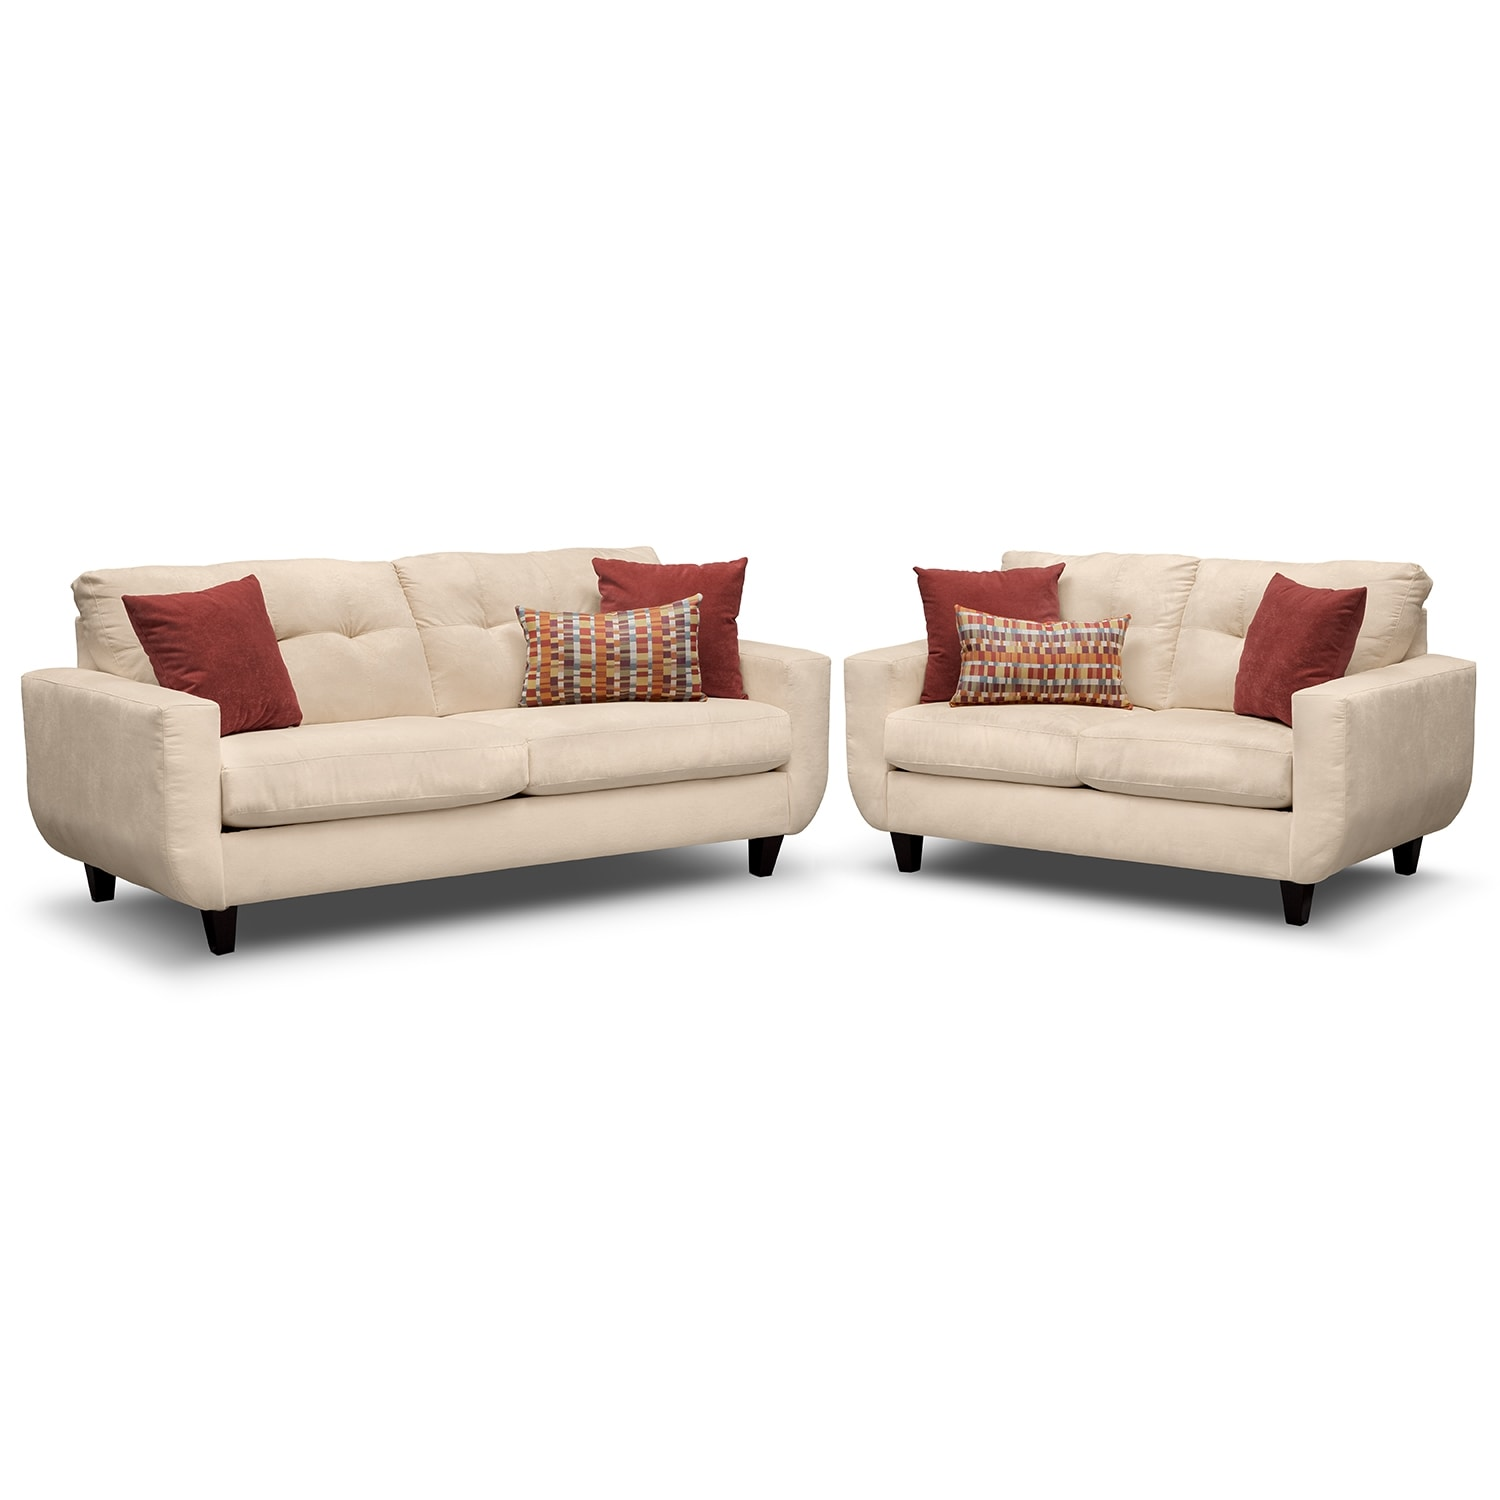 On sale furniture american signature furniture for Furniture village sale